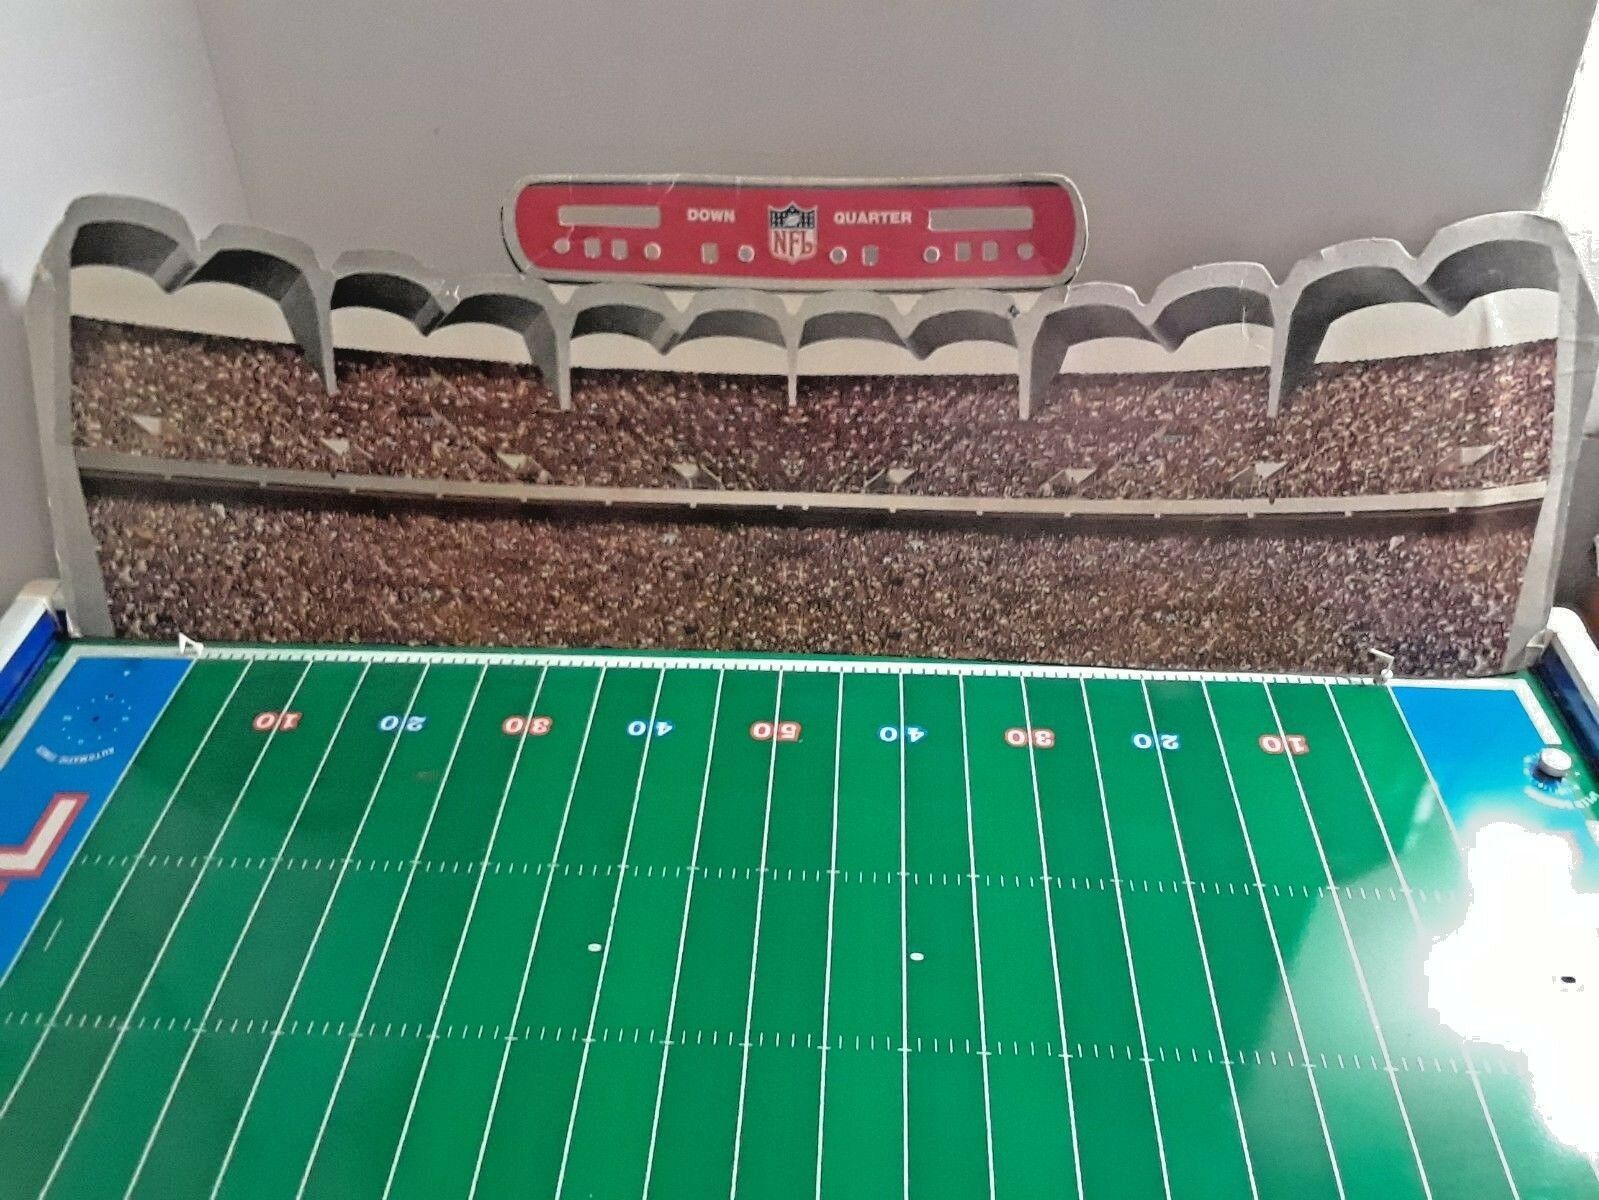 Vintage 1969 NFL Tudor Game(model 620) Dallas Cowboys VS New York Giants